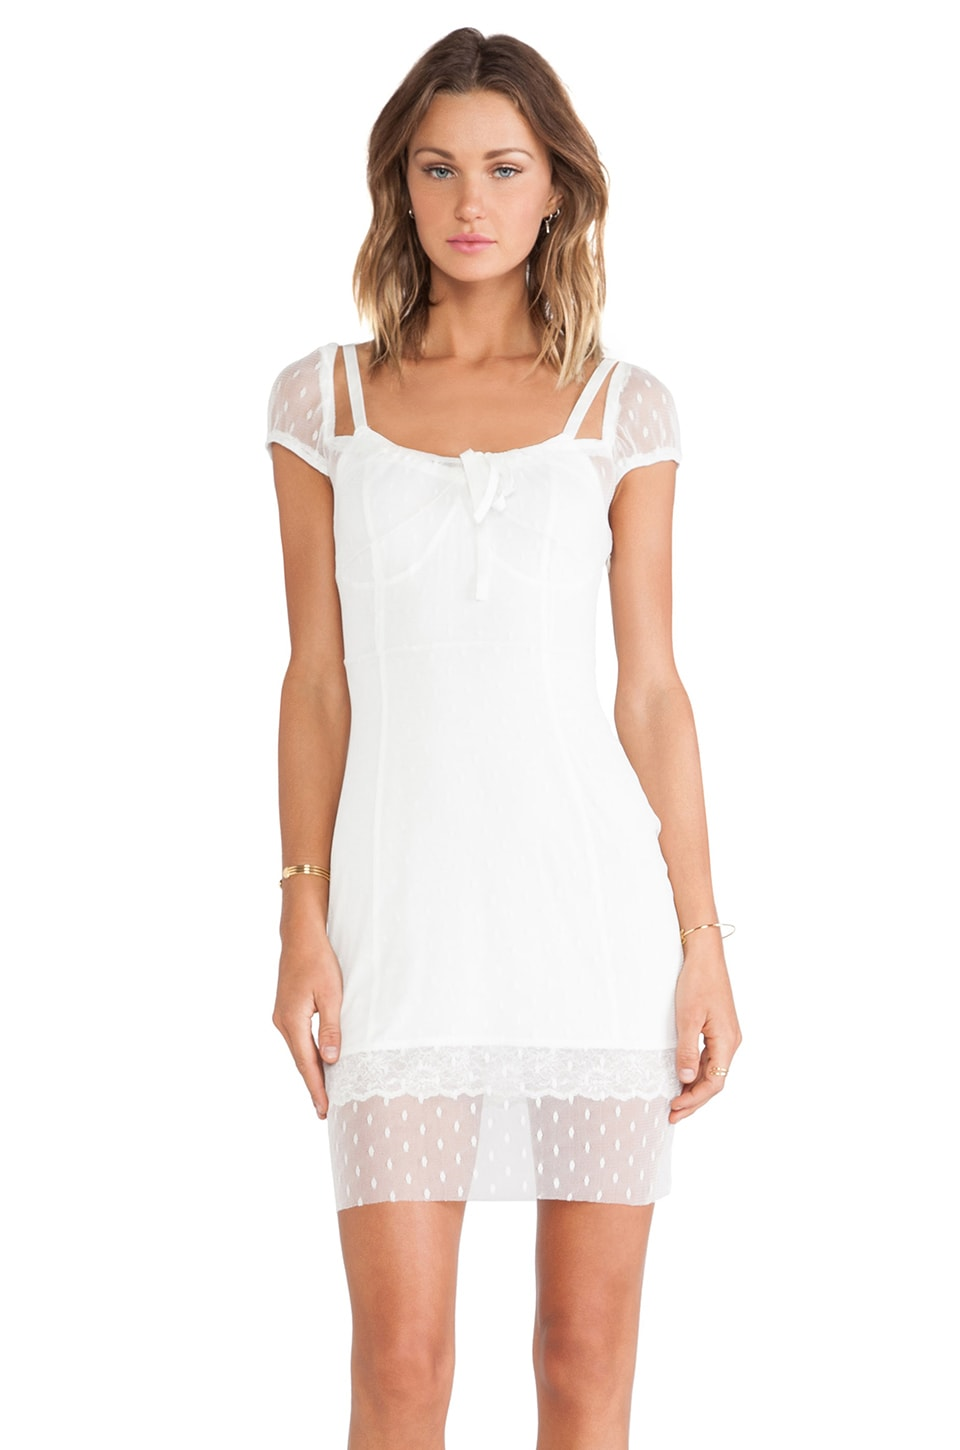 For Love & Lemons Lil' Darlin Polka Dress in White Dot